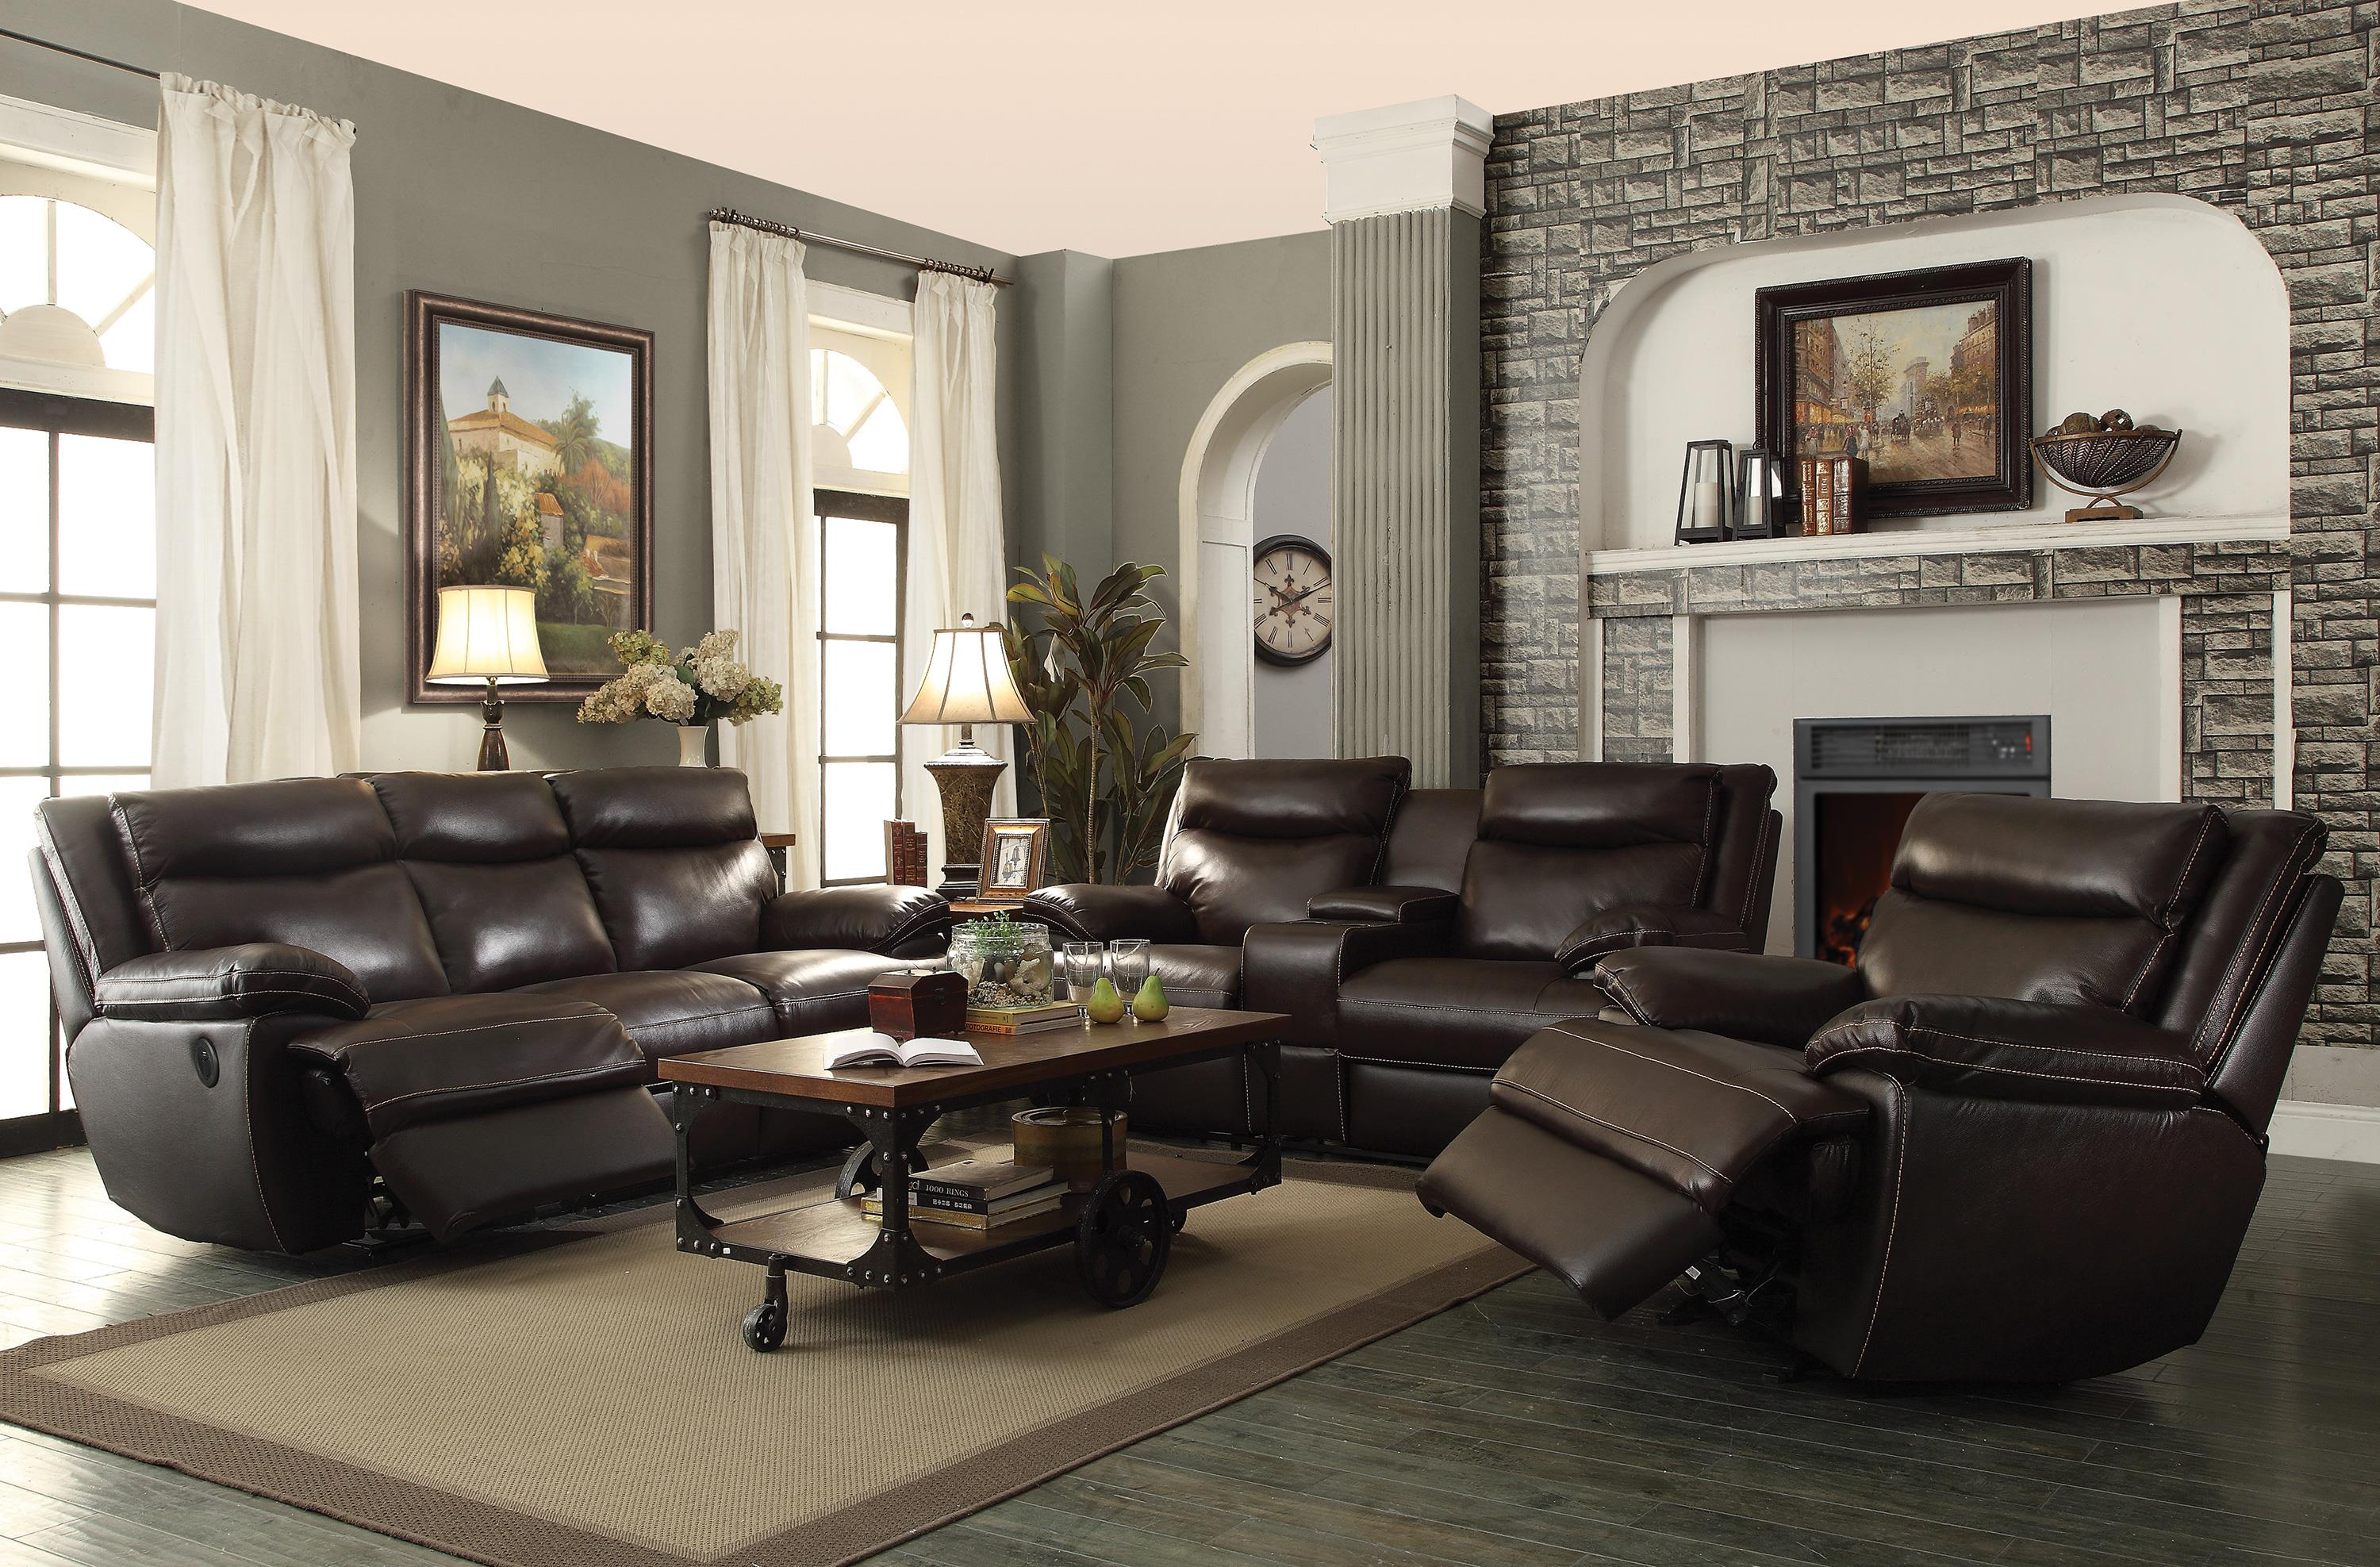 Macpherson Casual Reclining Sofa With Usb Charging Ports Quality Furniture At Affordable